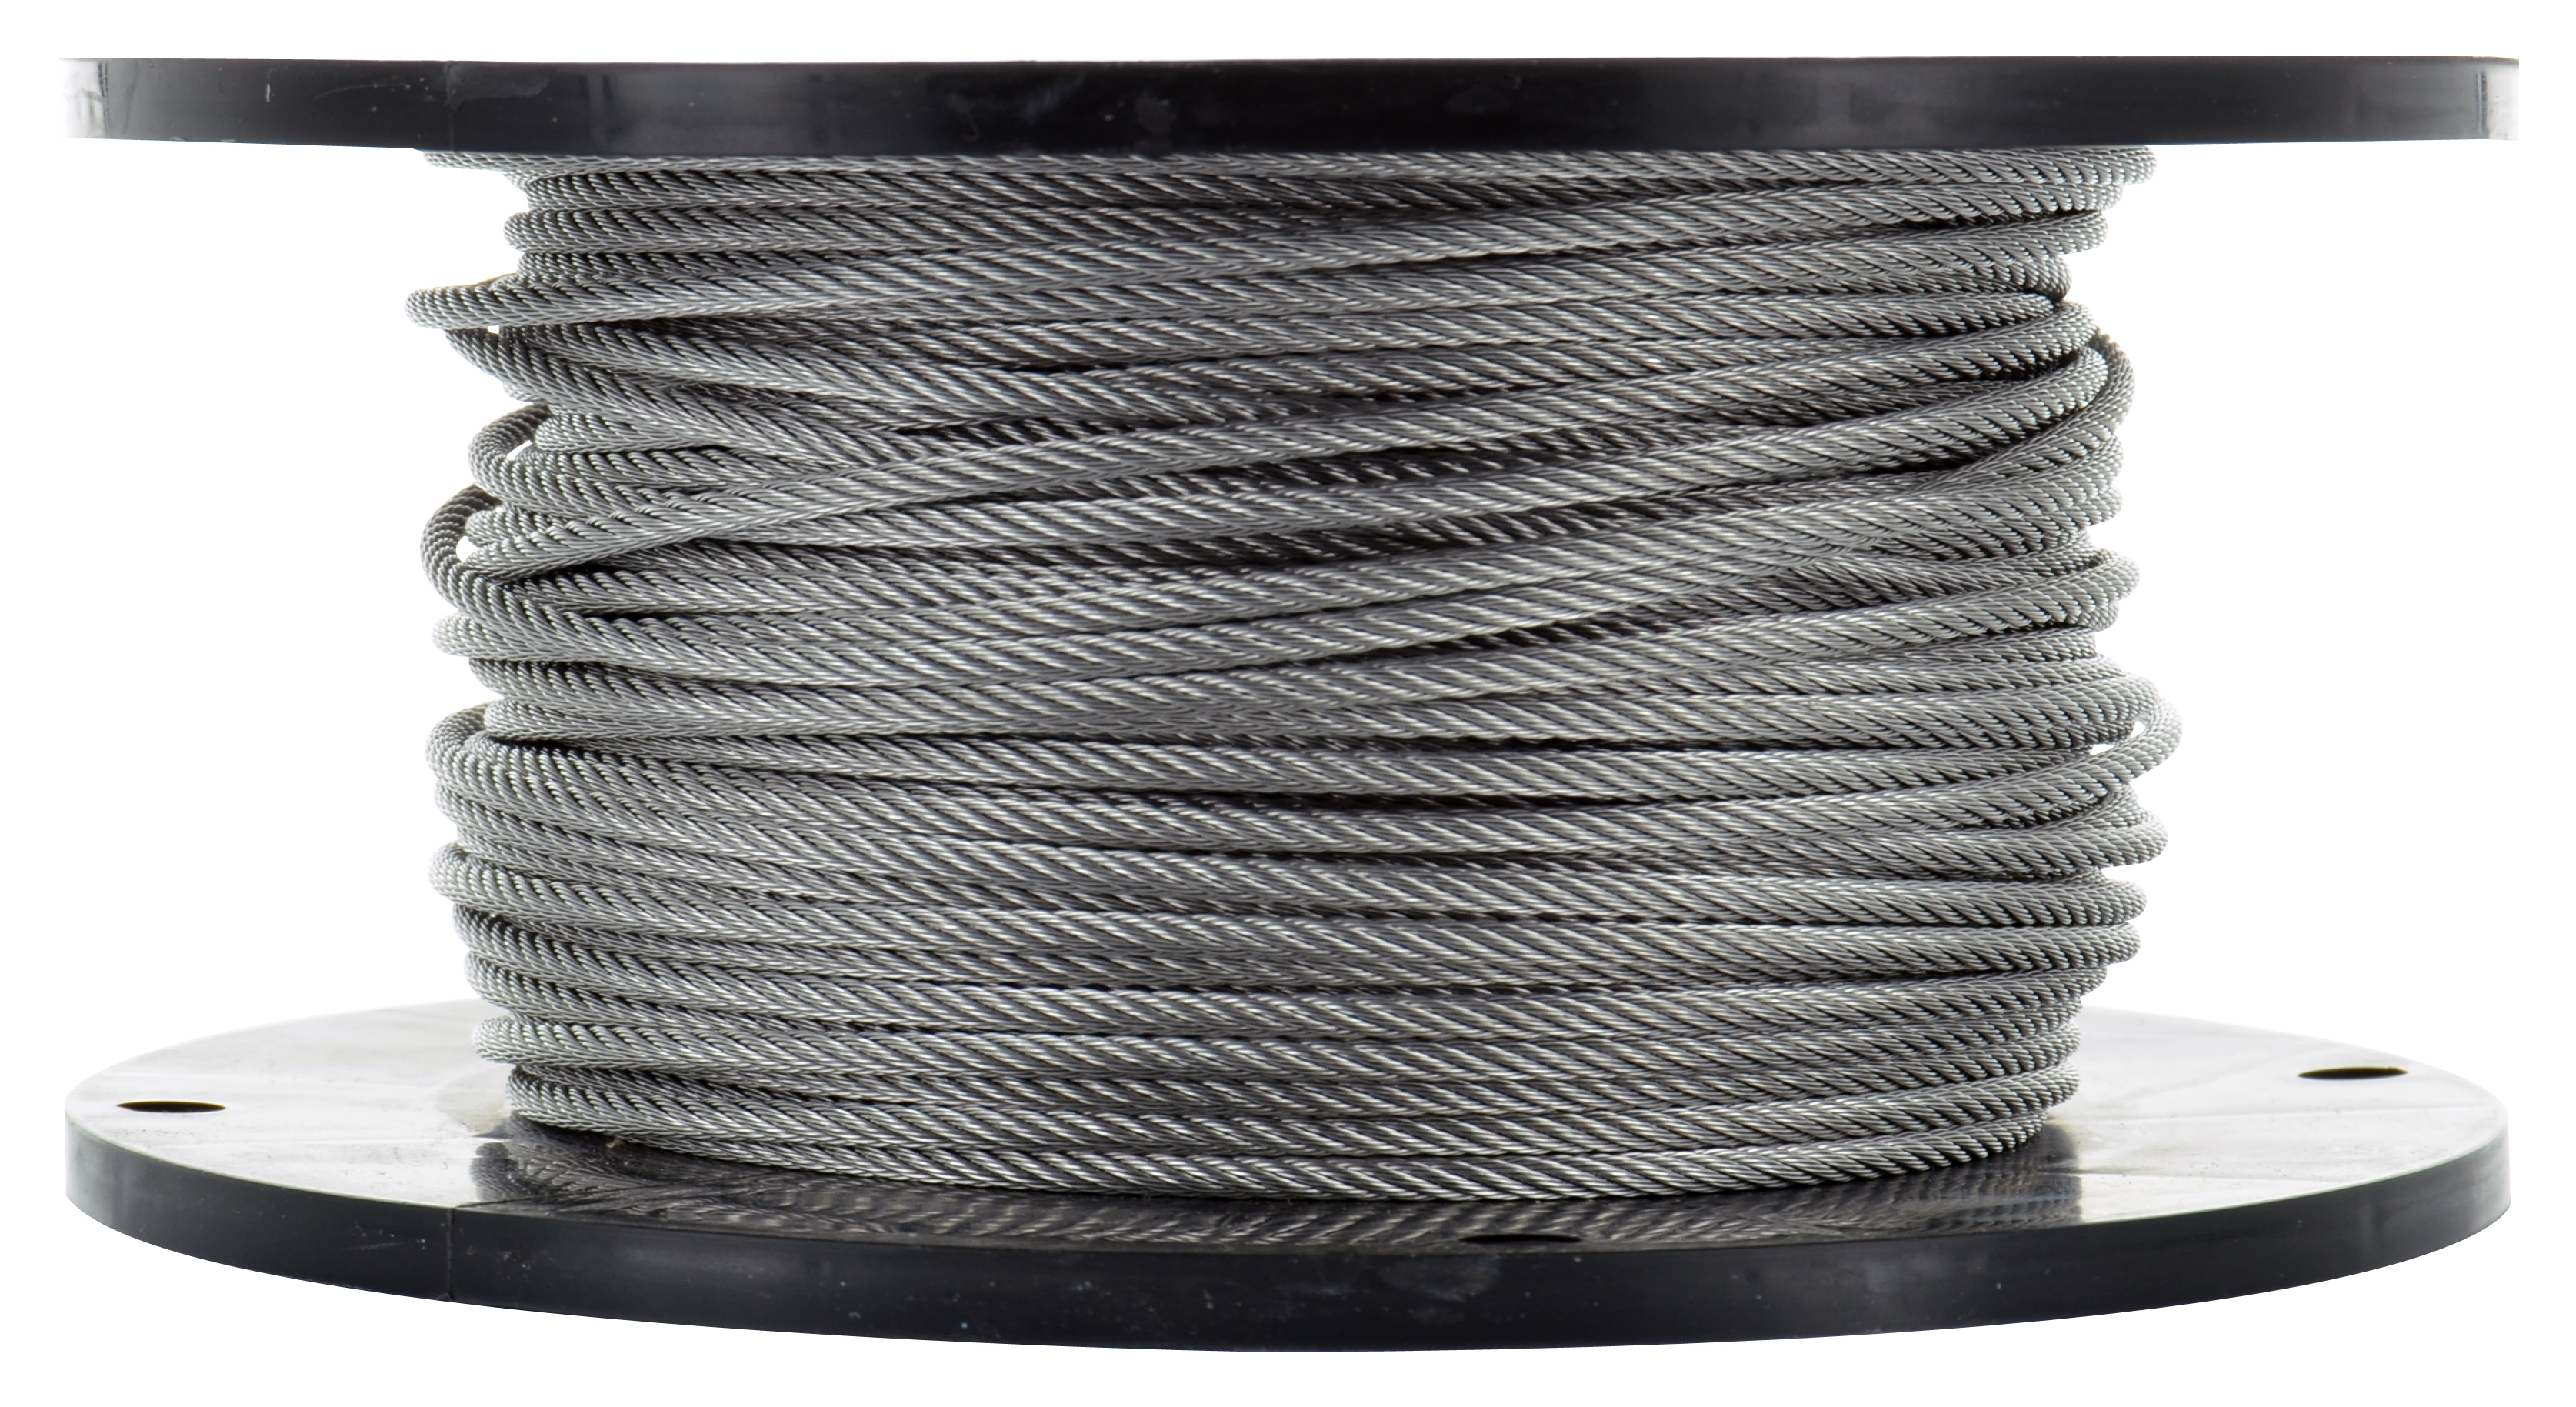 1/4 Inch x 250 ft 7X7 Strands 7000 Lb 304 Stainless Steel Uncoated Galvanized Aircraft Cable